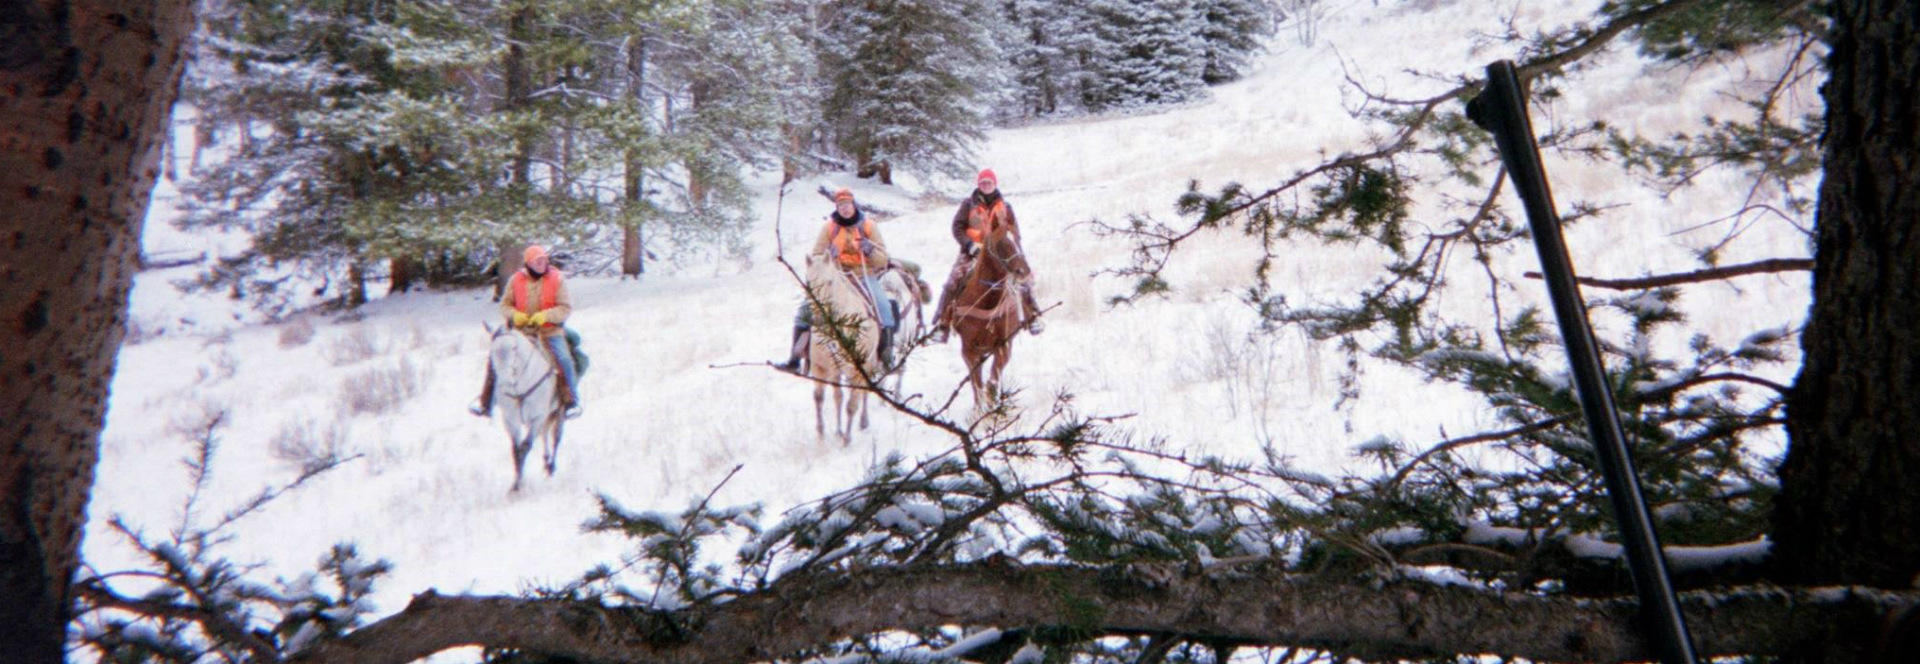 Three people wearing camouflage hunting gear ride horses through a snow covered forest.